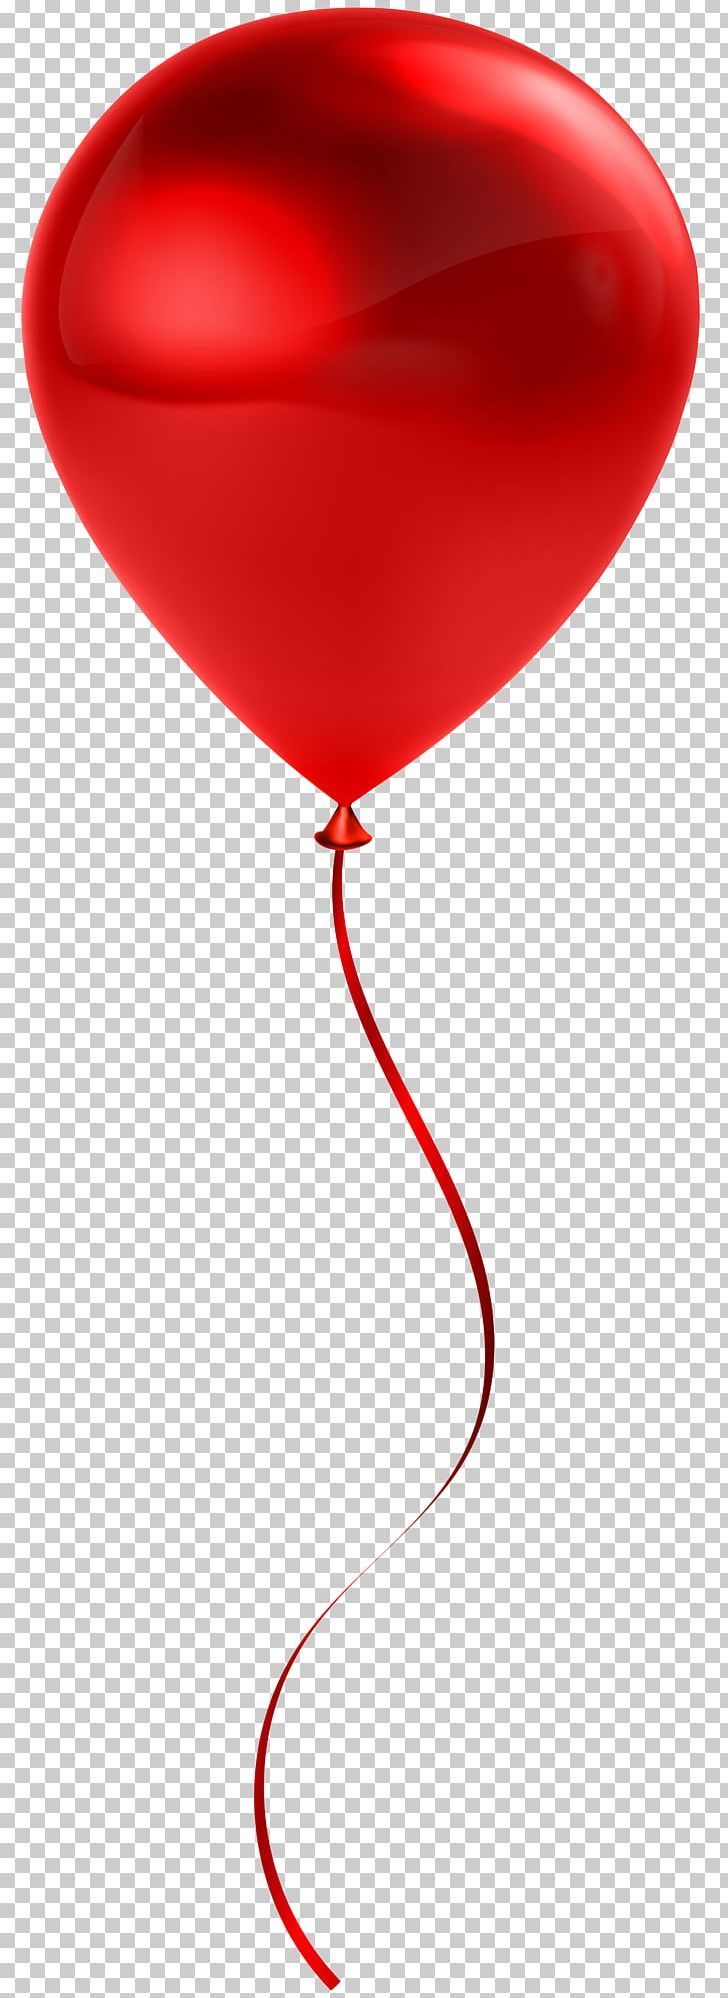 Balloon Red Png Balloon Birthday Objects Party Red Balloons Red Balloon Ballon